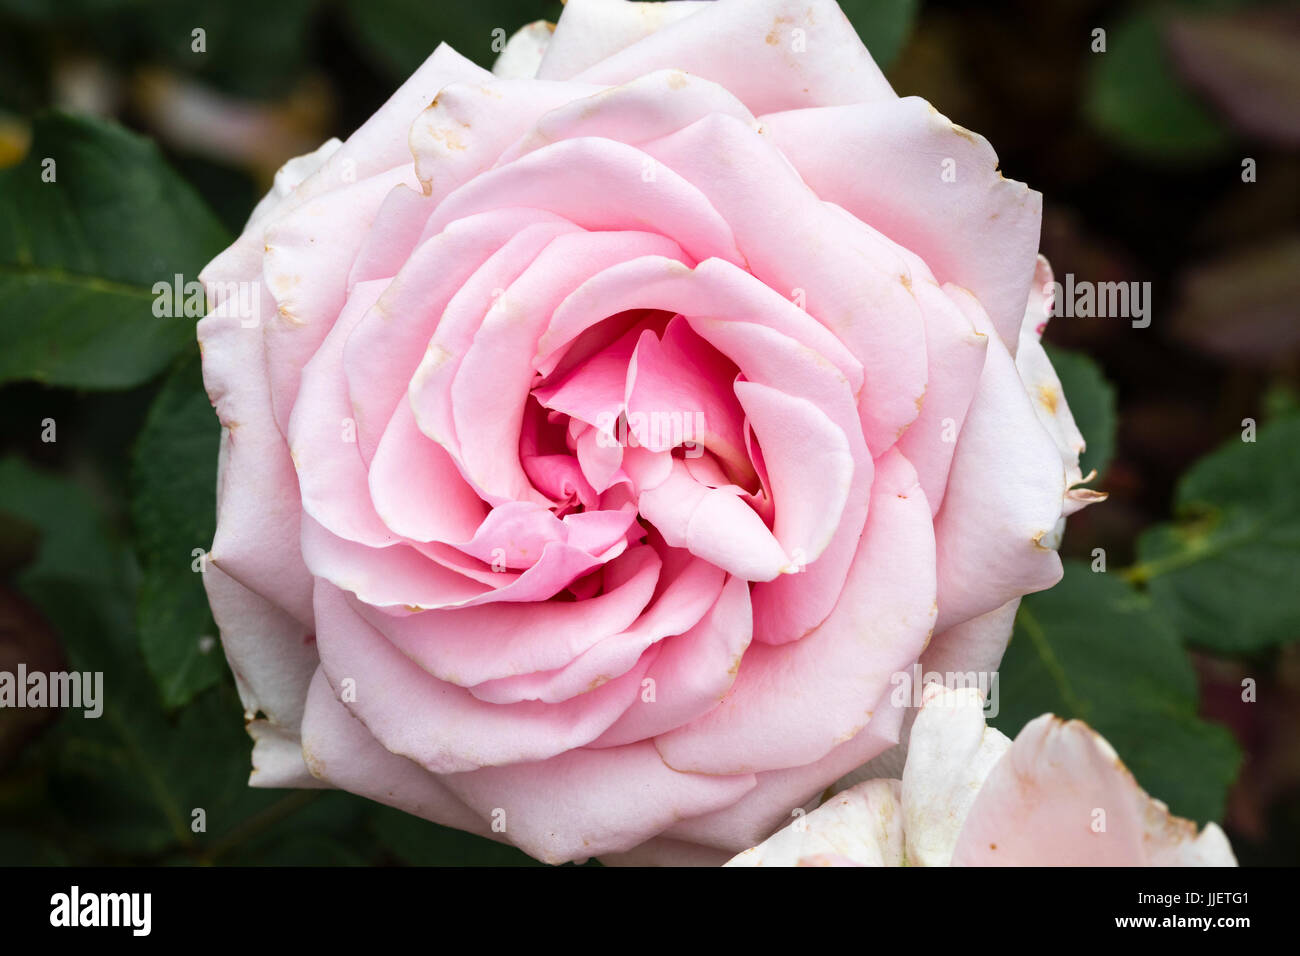 Fully double pink flower of the hybrid tea rose, Rosa 'Savoy Hotel' - Stock Image